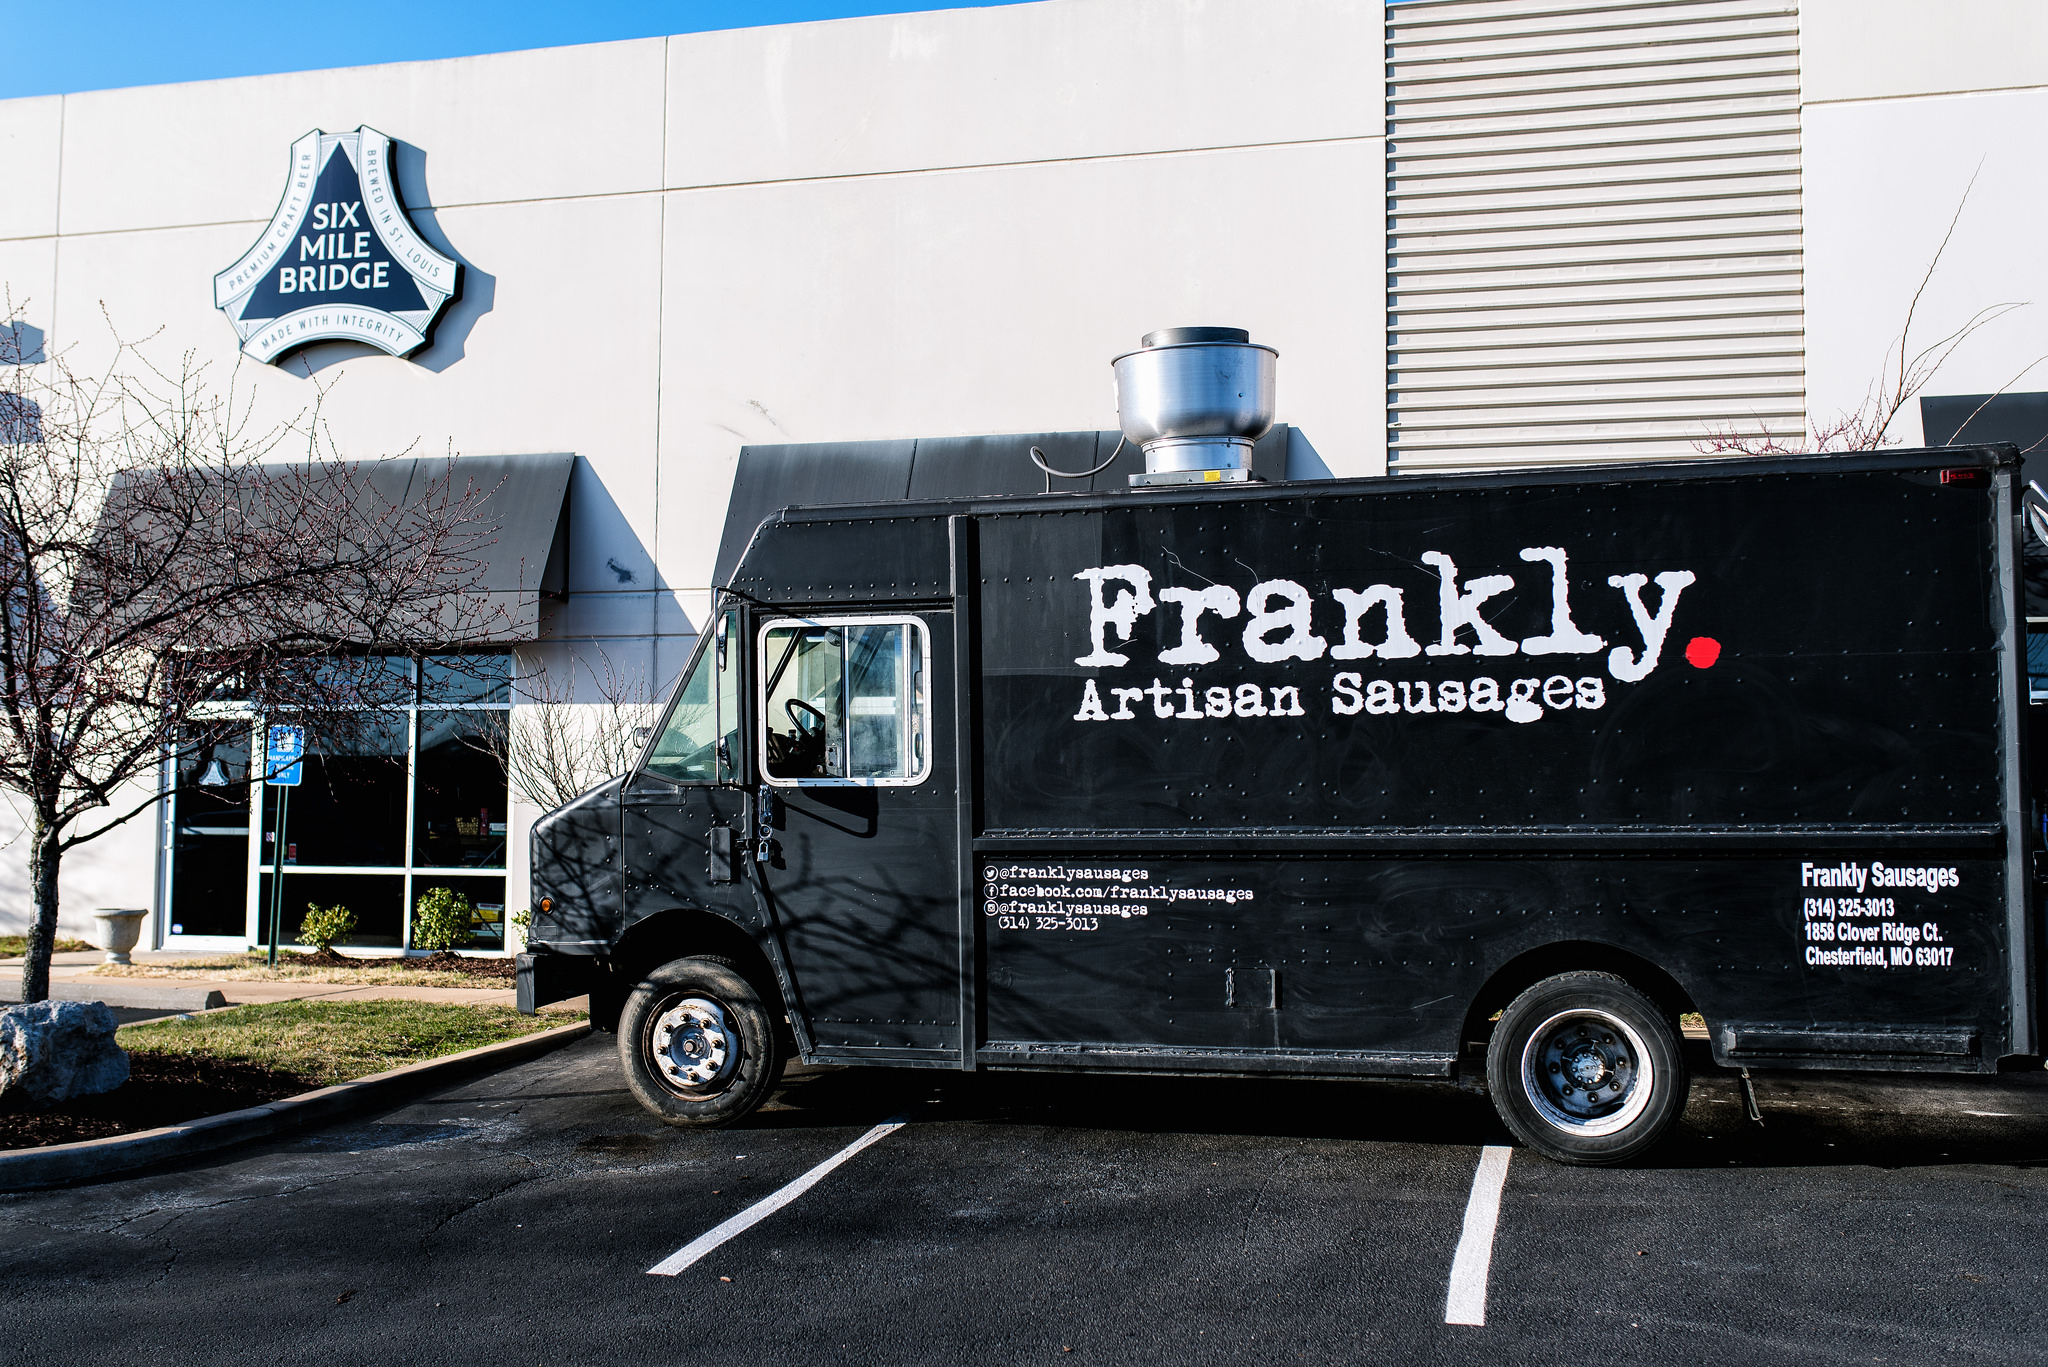 Frankly-Sausages-Truck.jpg